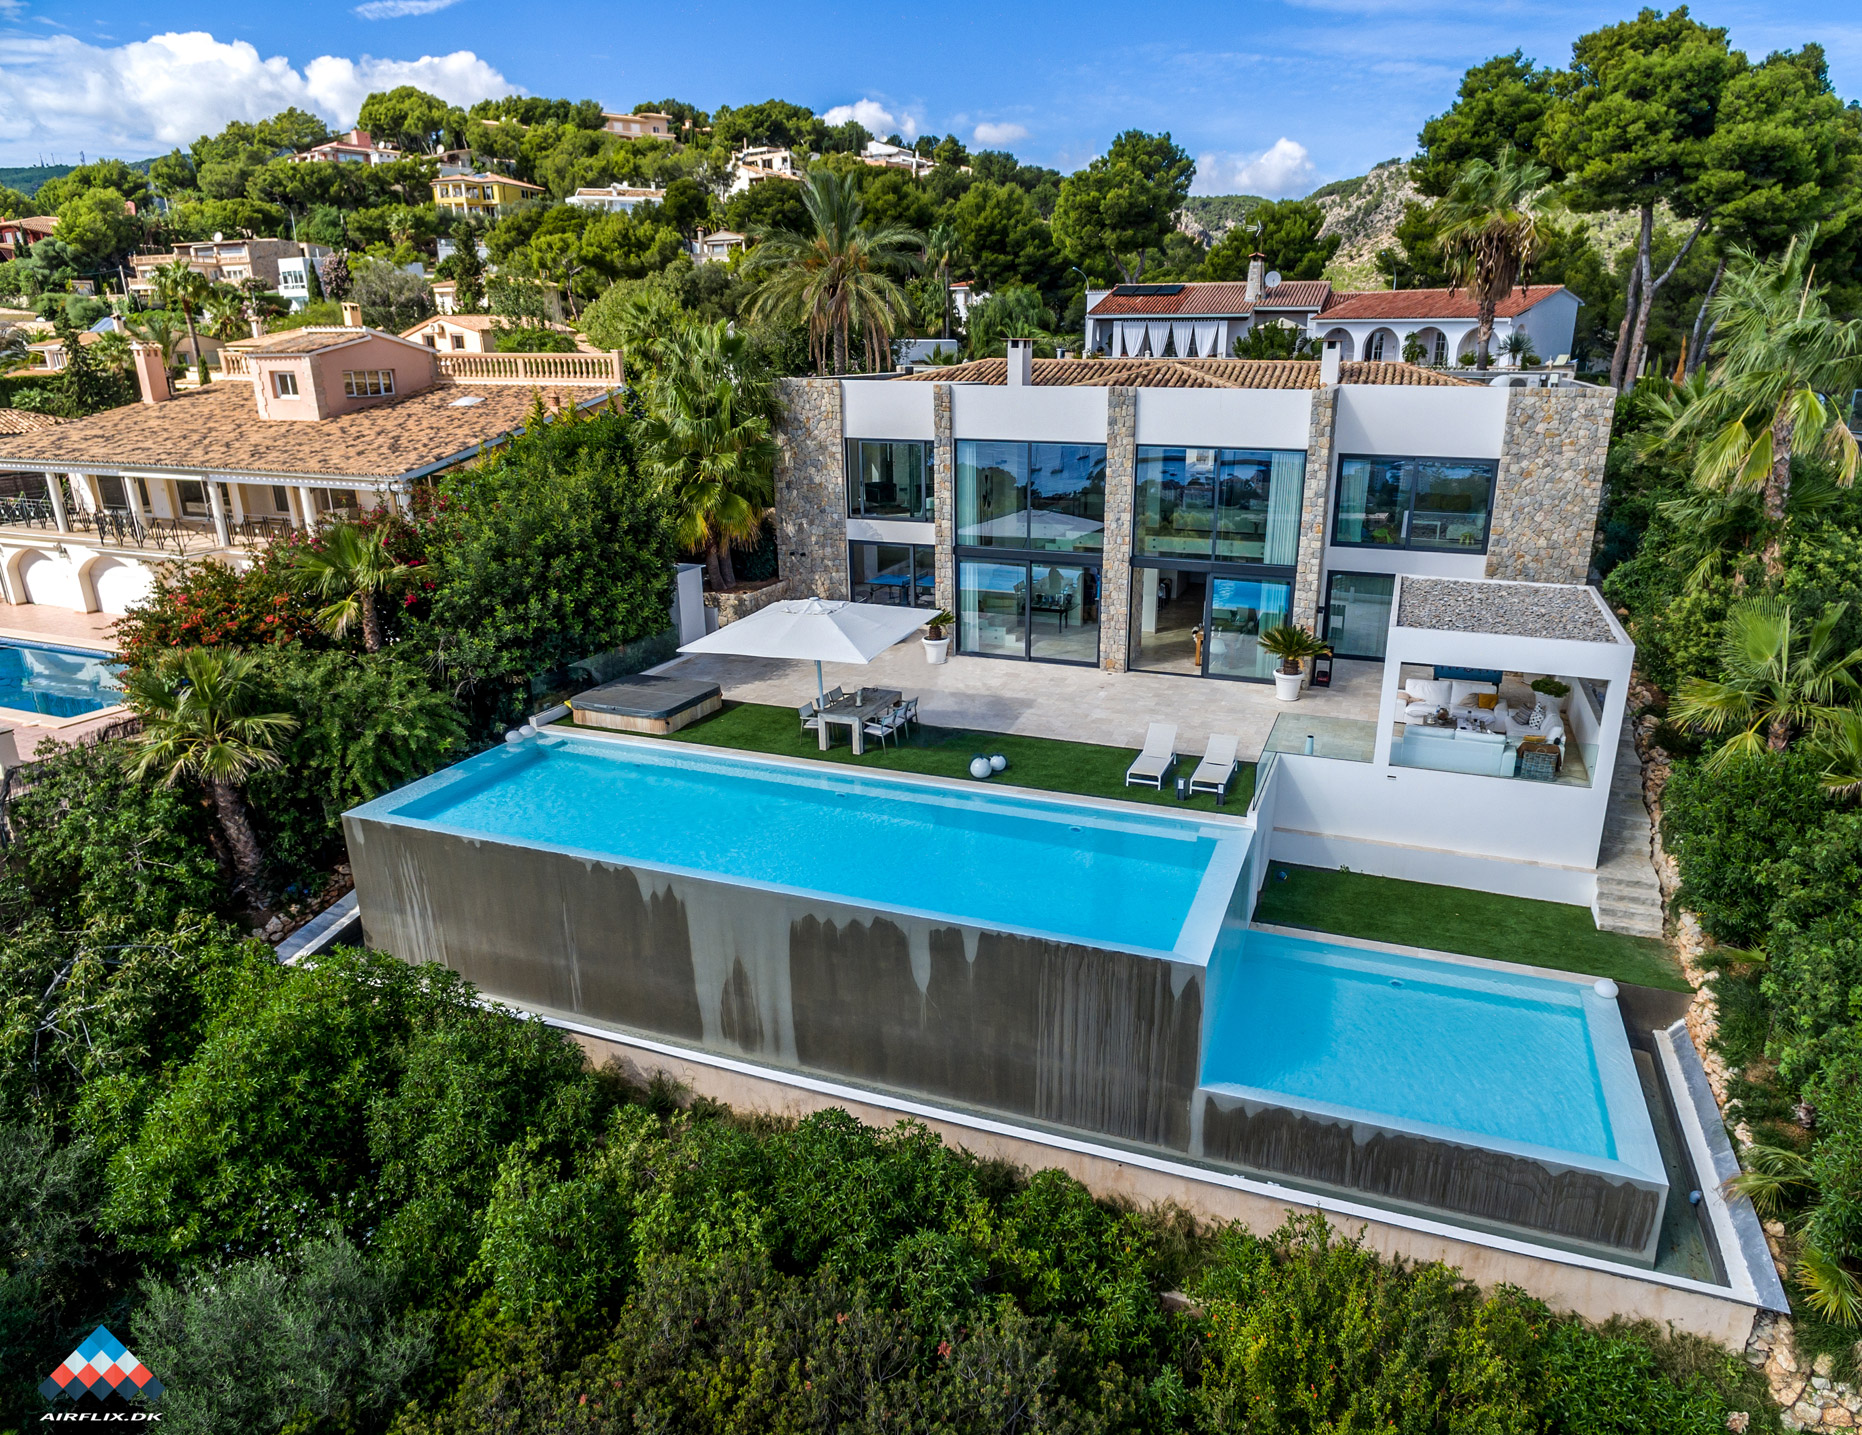 luxury-villa-drone-photo